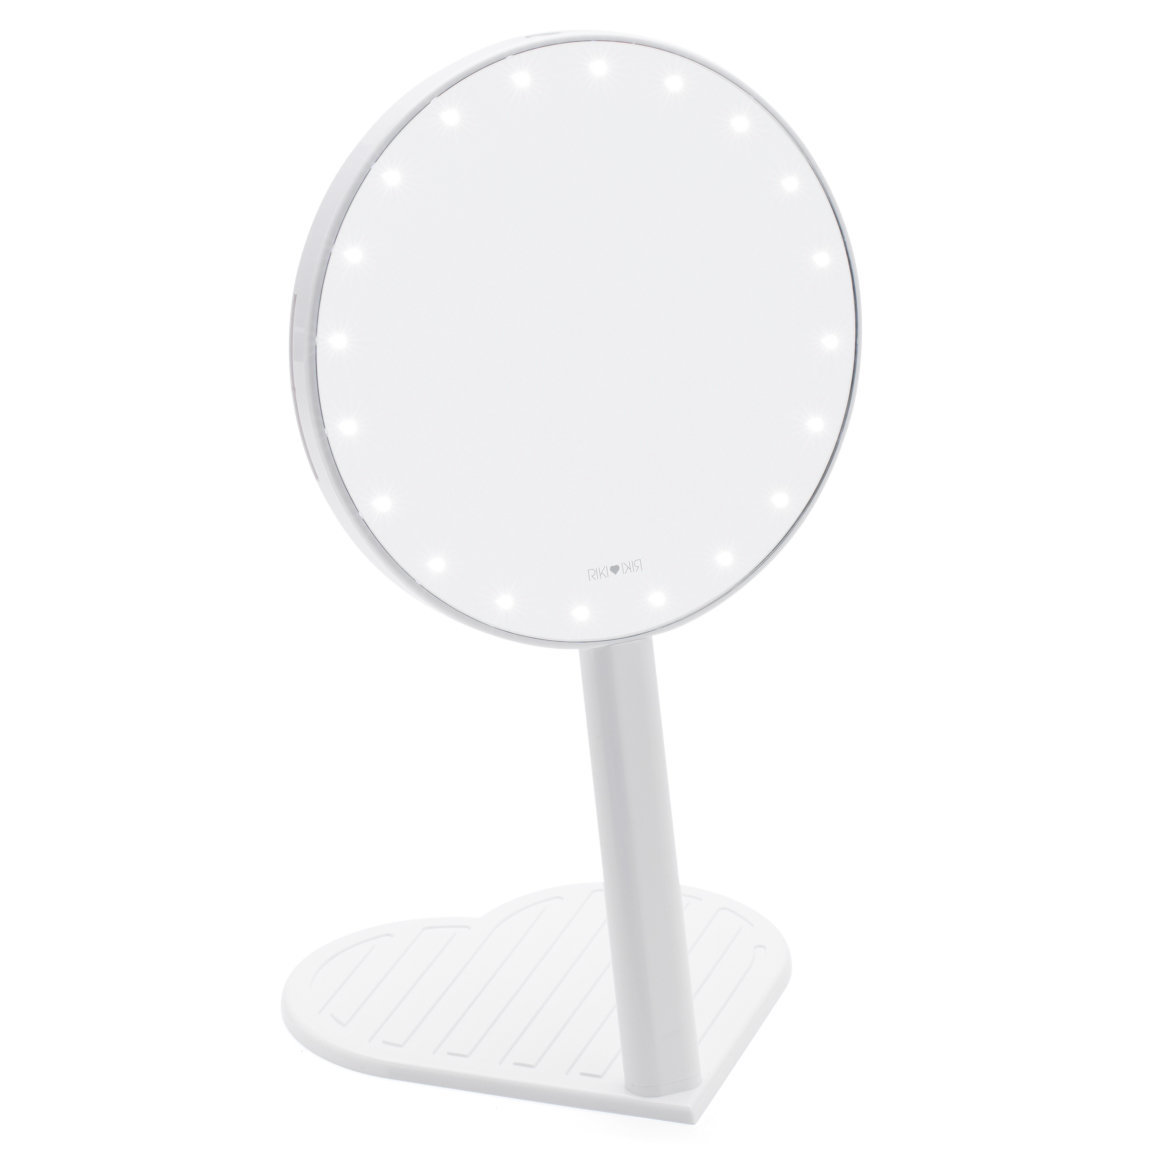 Glamcor Riki Graceful Vanity Mirror alternative view 1 - product swatch.